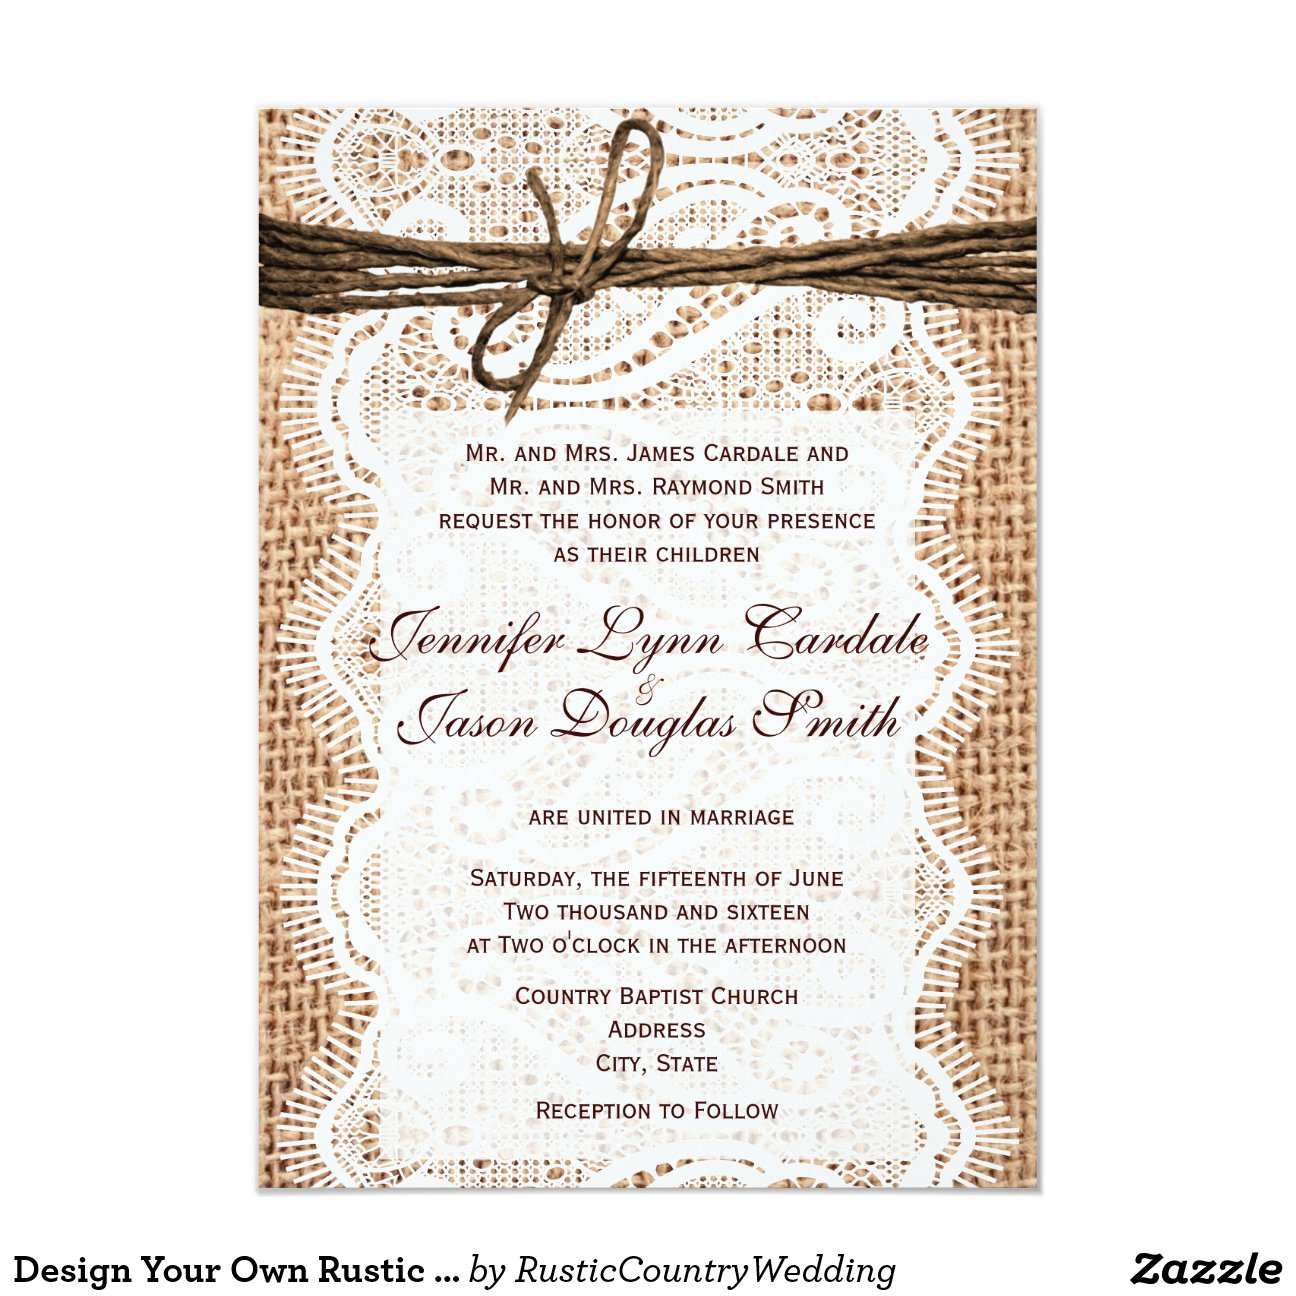 Design_your_own_rustic_country_wedding_invitations